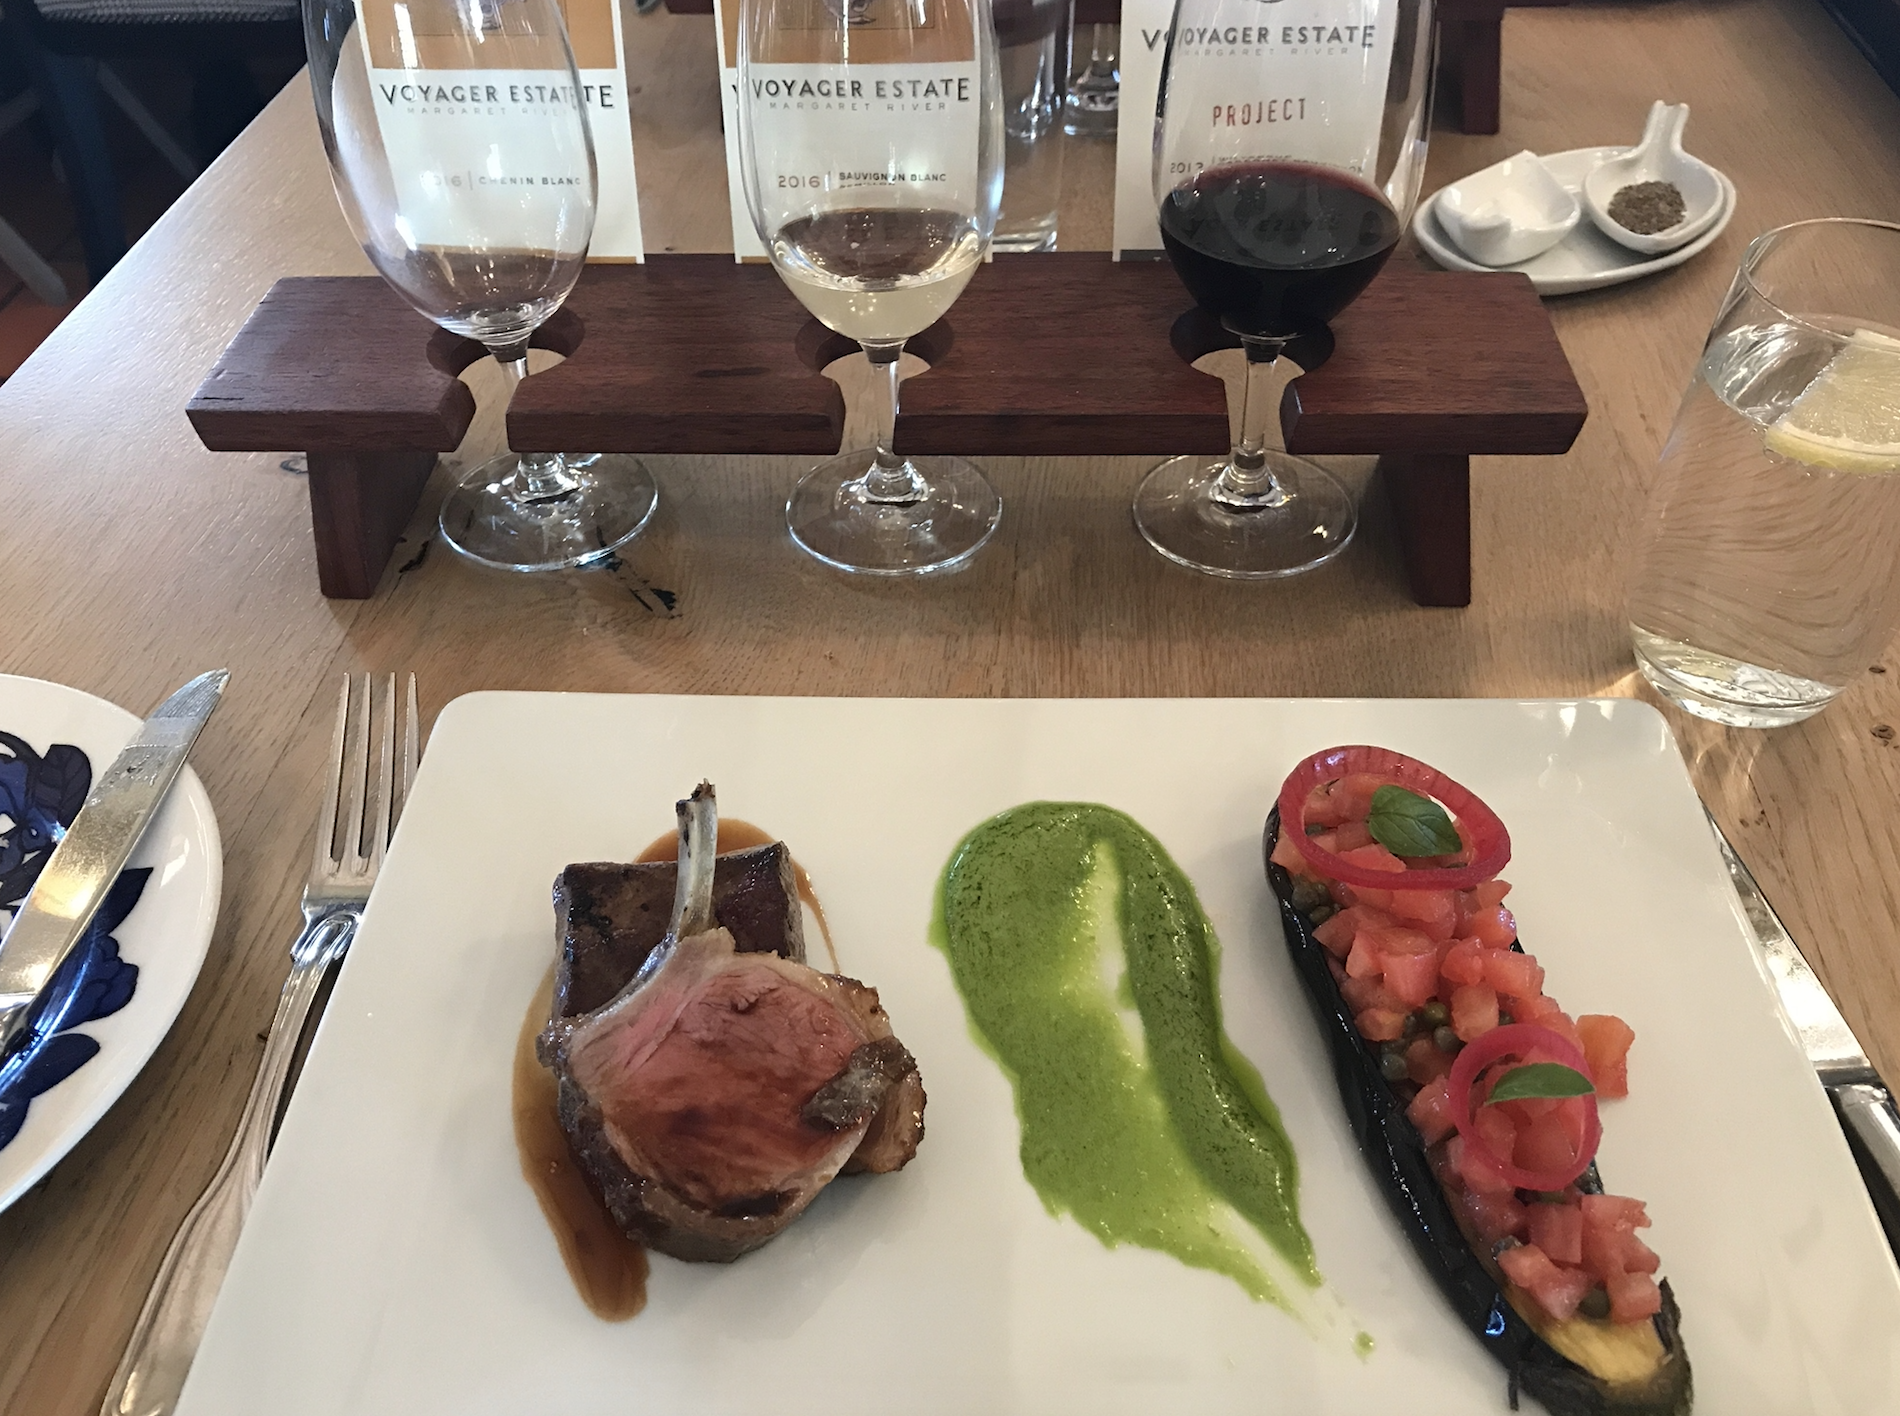 Lunch at Voyager Wine Estate